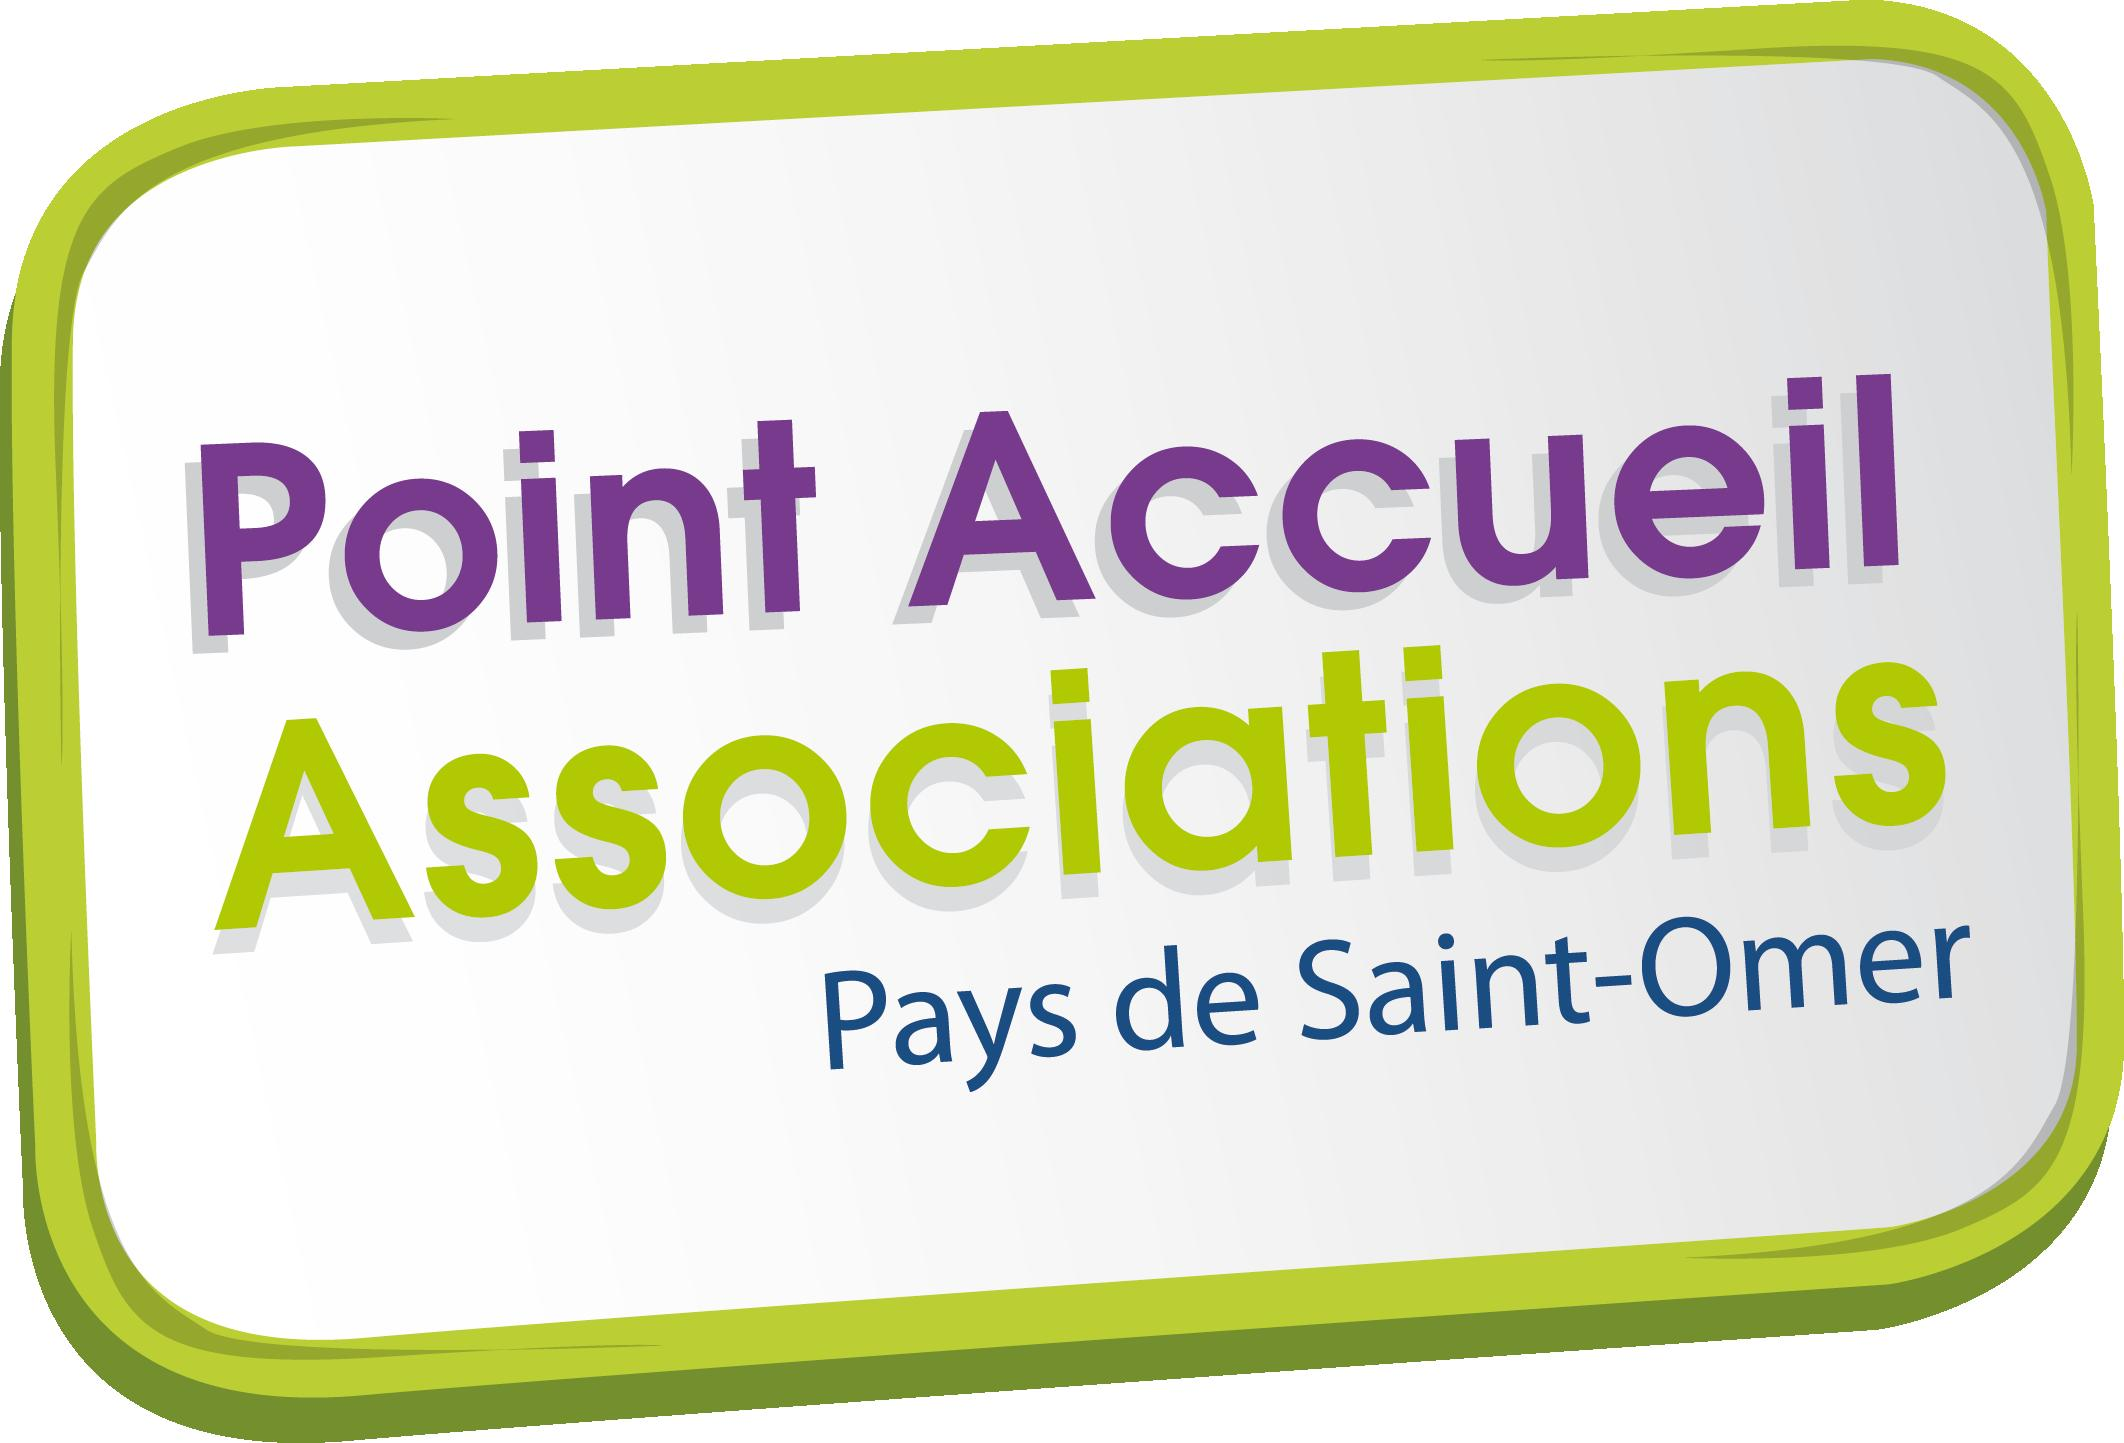 logo du Point Accueil Associations